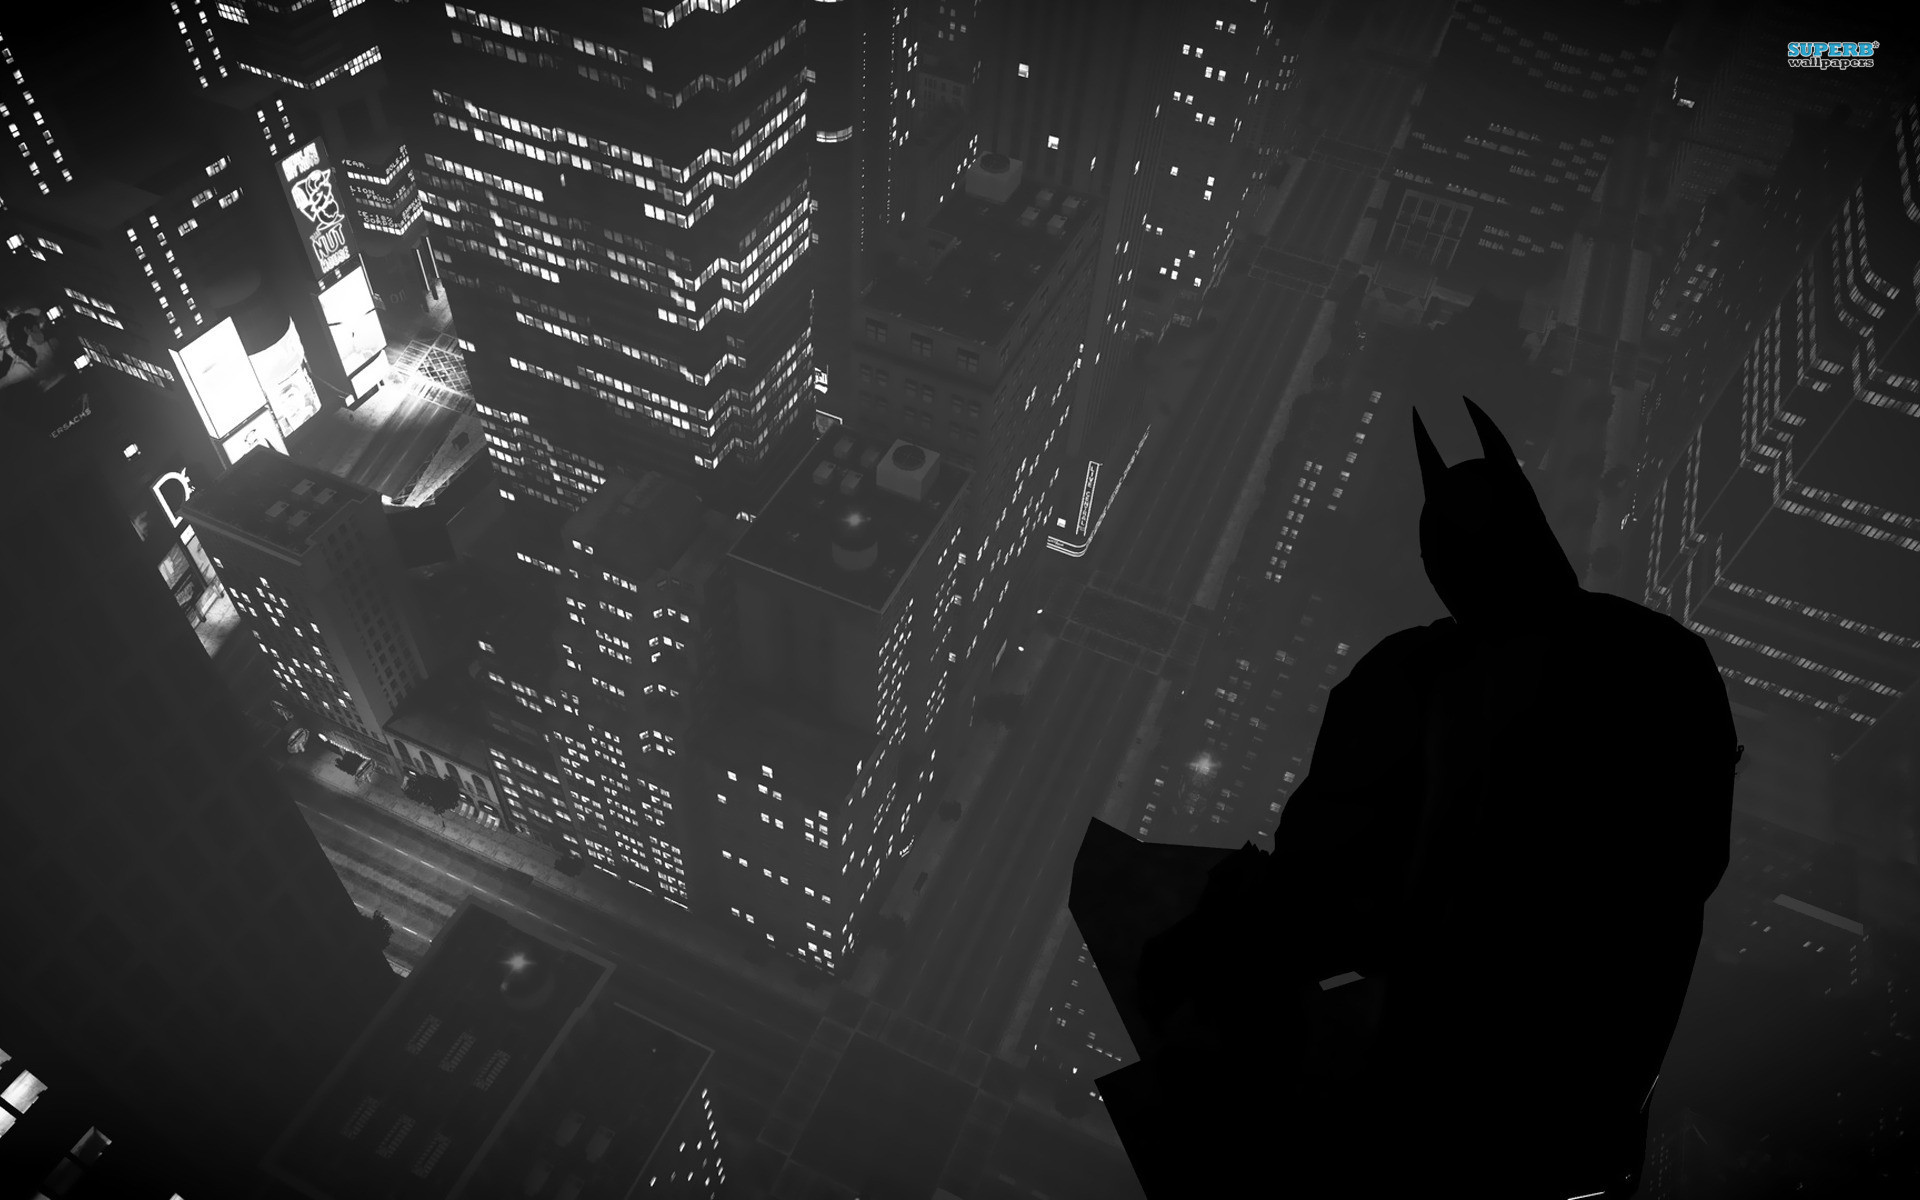 Batman The Dark Knight Wallpaper For Android #to3AU ~ Wallove